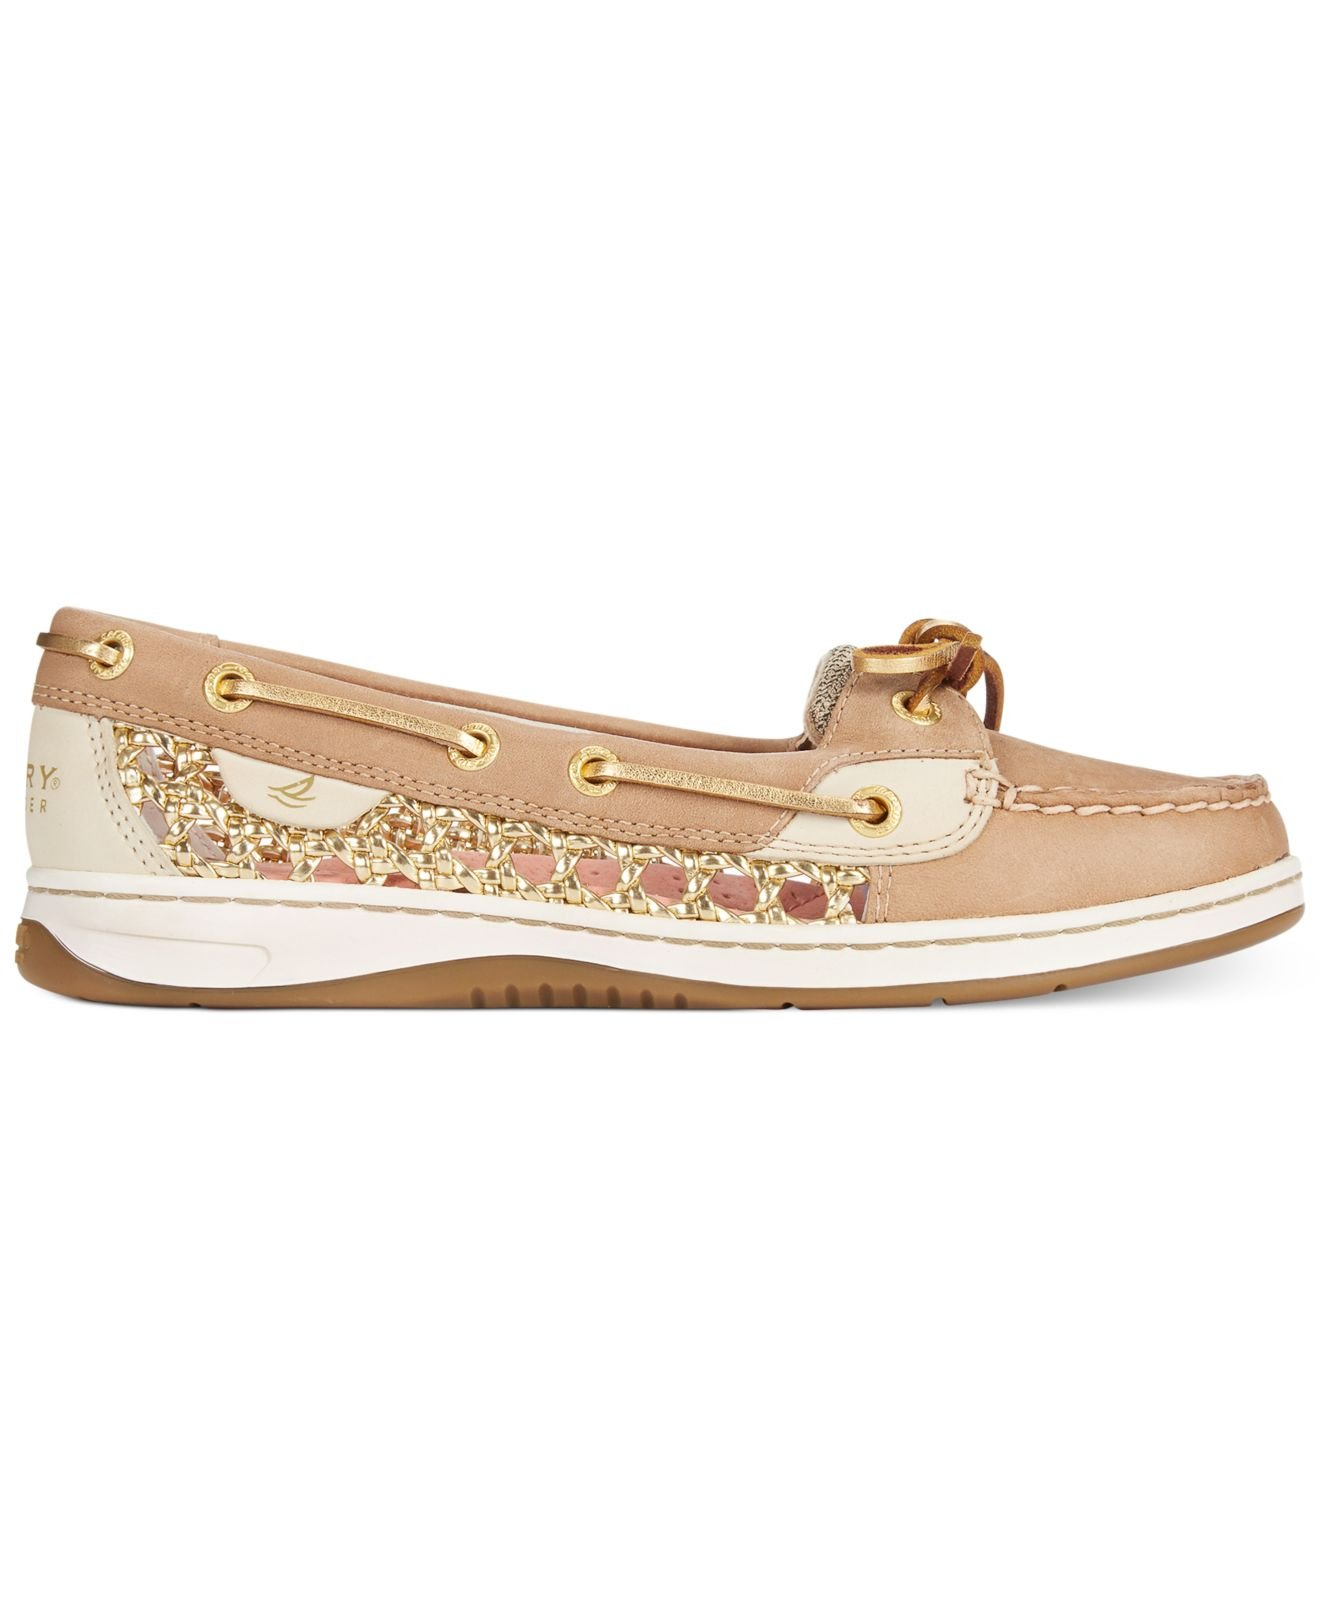 Sperry Top Sider Women Boat Shoe Gold